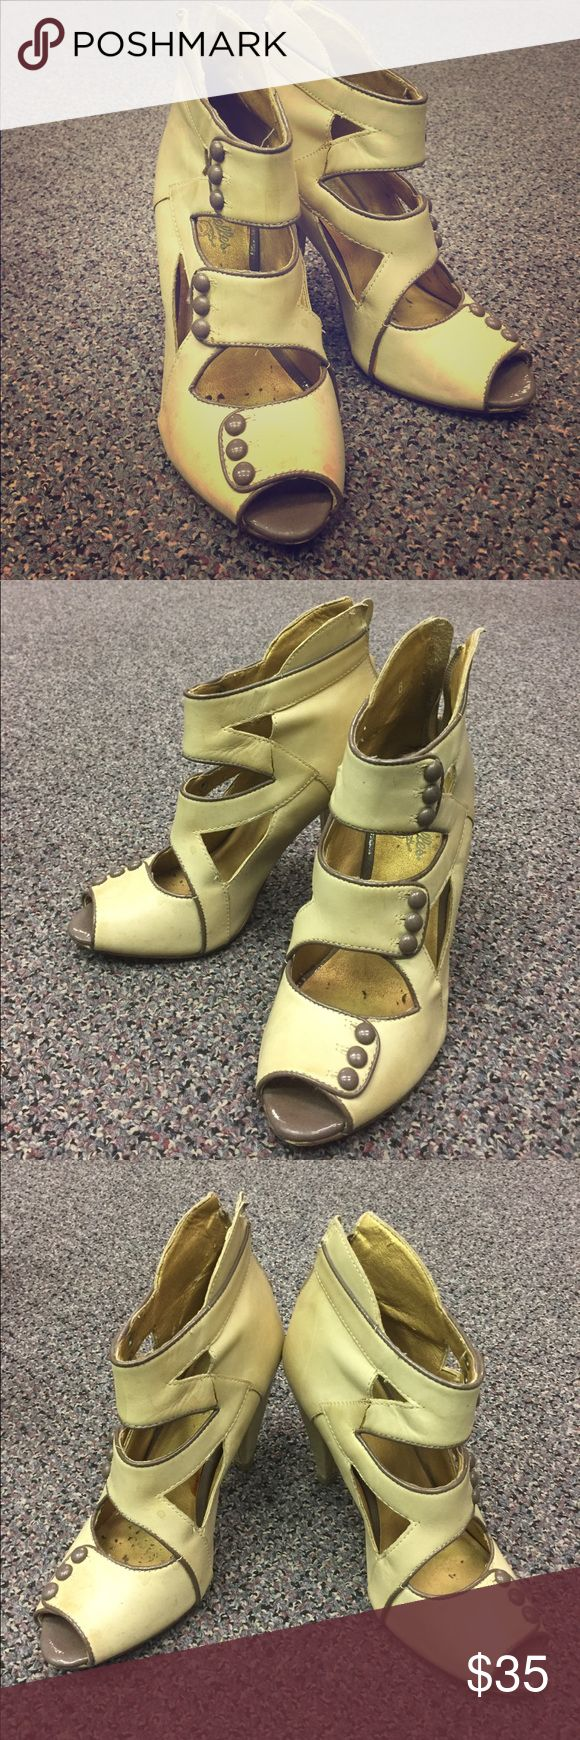 Seychelles Victorian/Steam Punk Button-up Heels Seychelles Victorian/Steam Punk Button-up Heels. Cream leather with cutouts and taupe button/edging details. Zipper back. Gently worn, heels have some scuffs. SUPER comfy strutting around downtown. 6 (36) Seychelles Shoes Heels